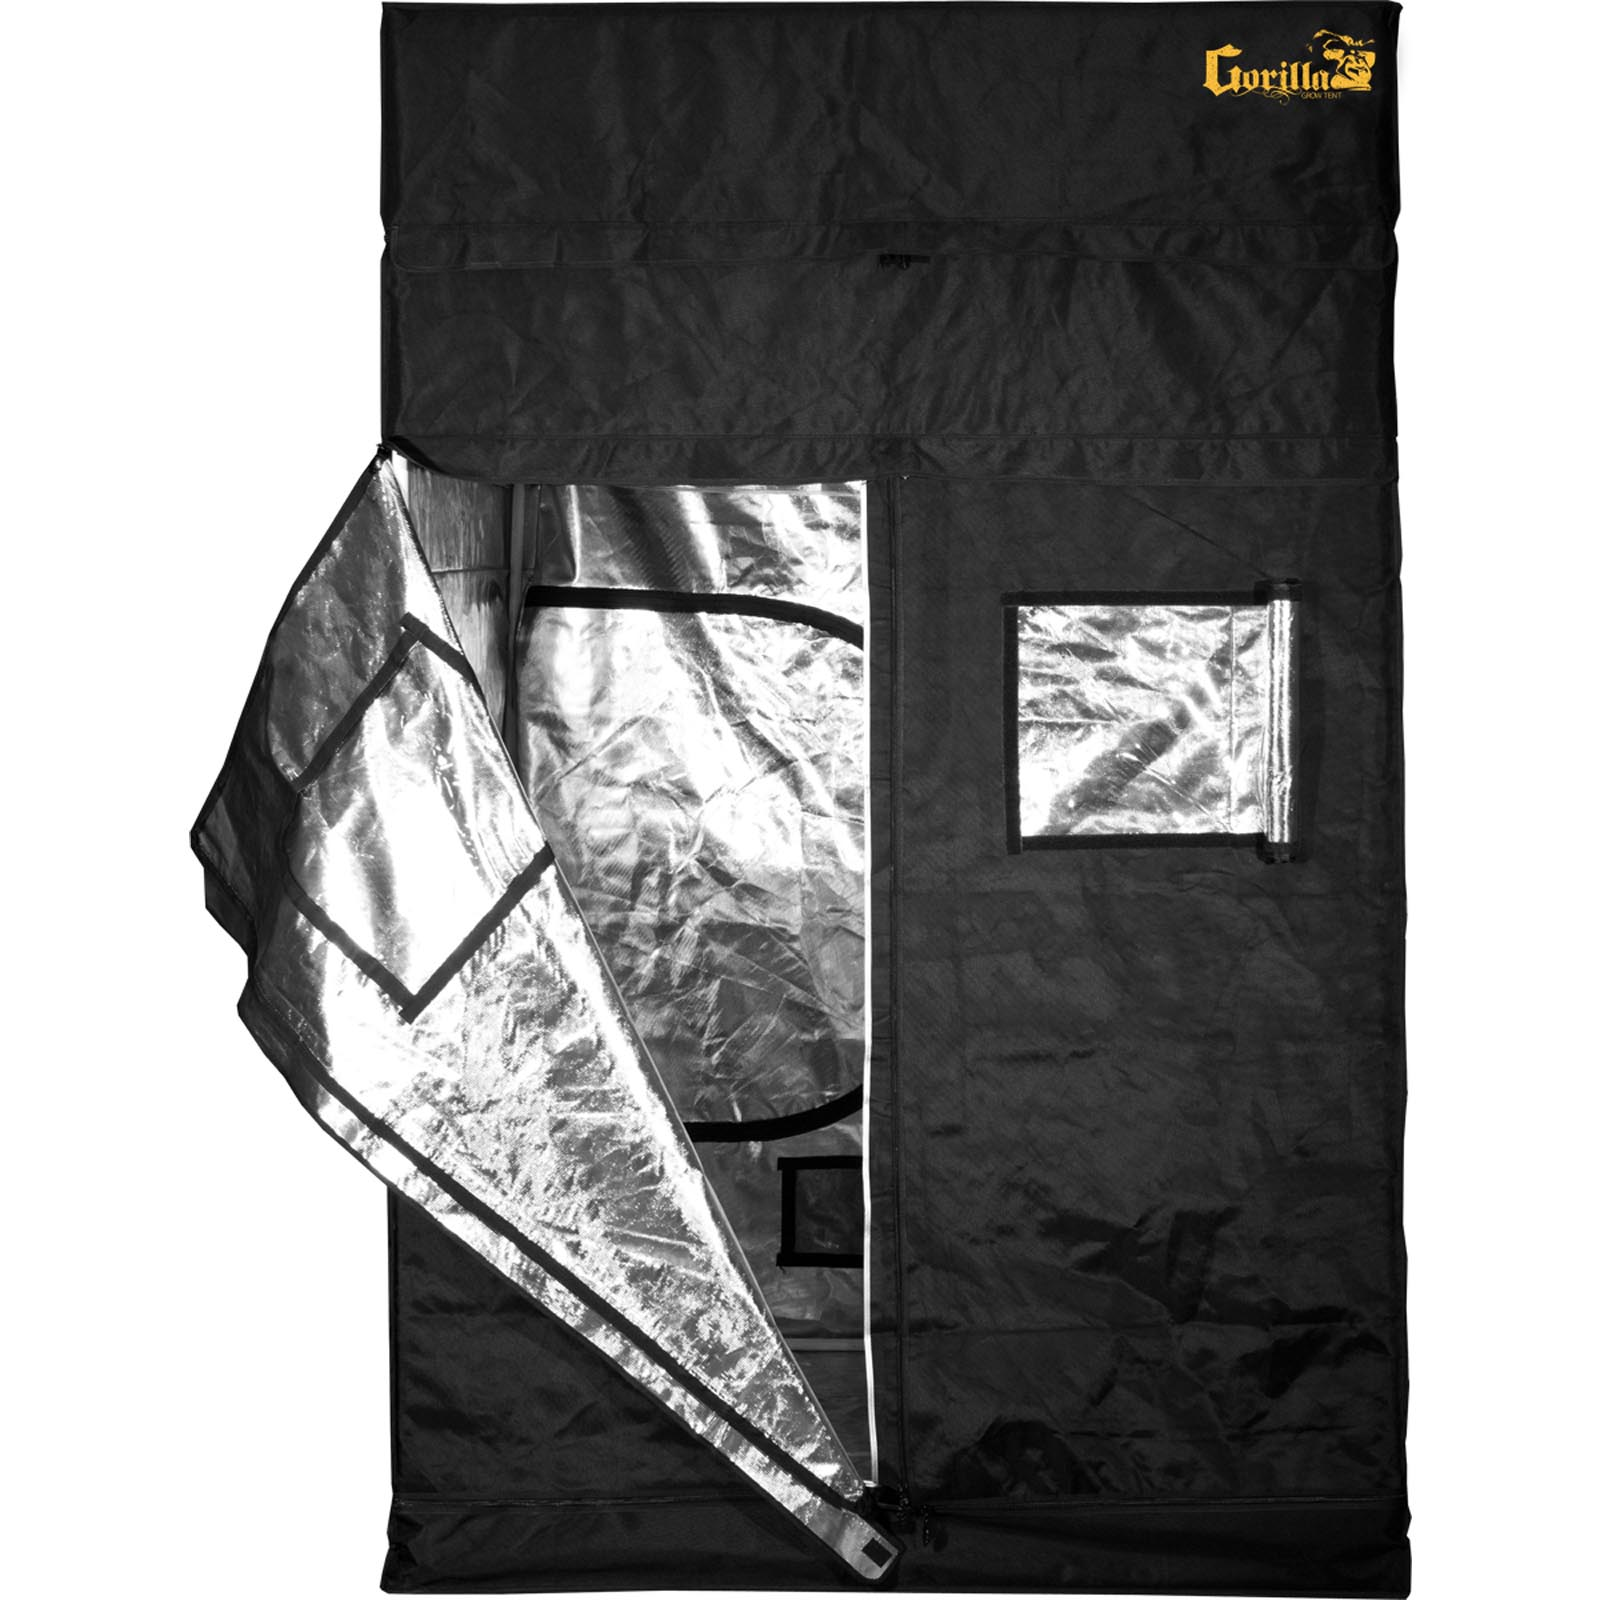 NEW! Gorilla Grow Tent 5' x 5' Indoor Hydroponic Greenhouse Garden Room | GGT55